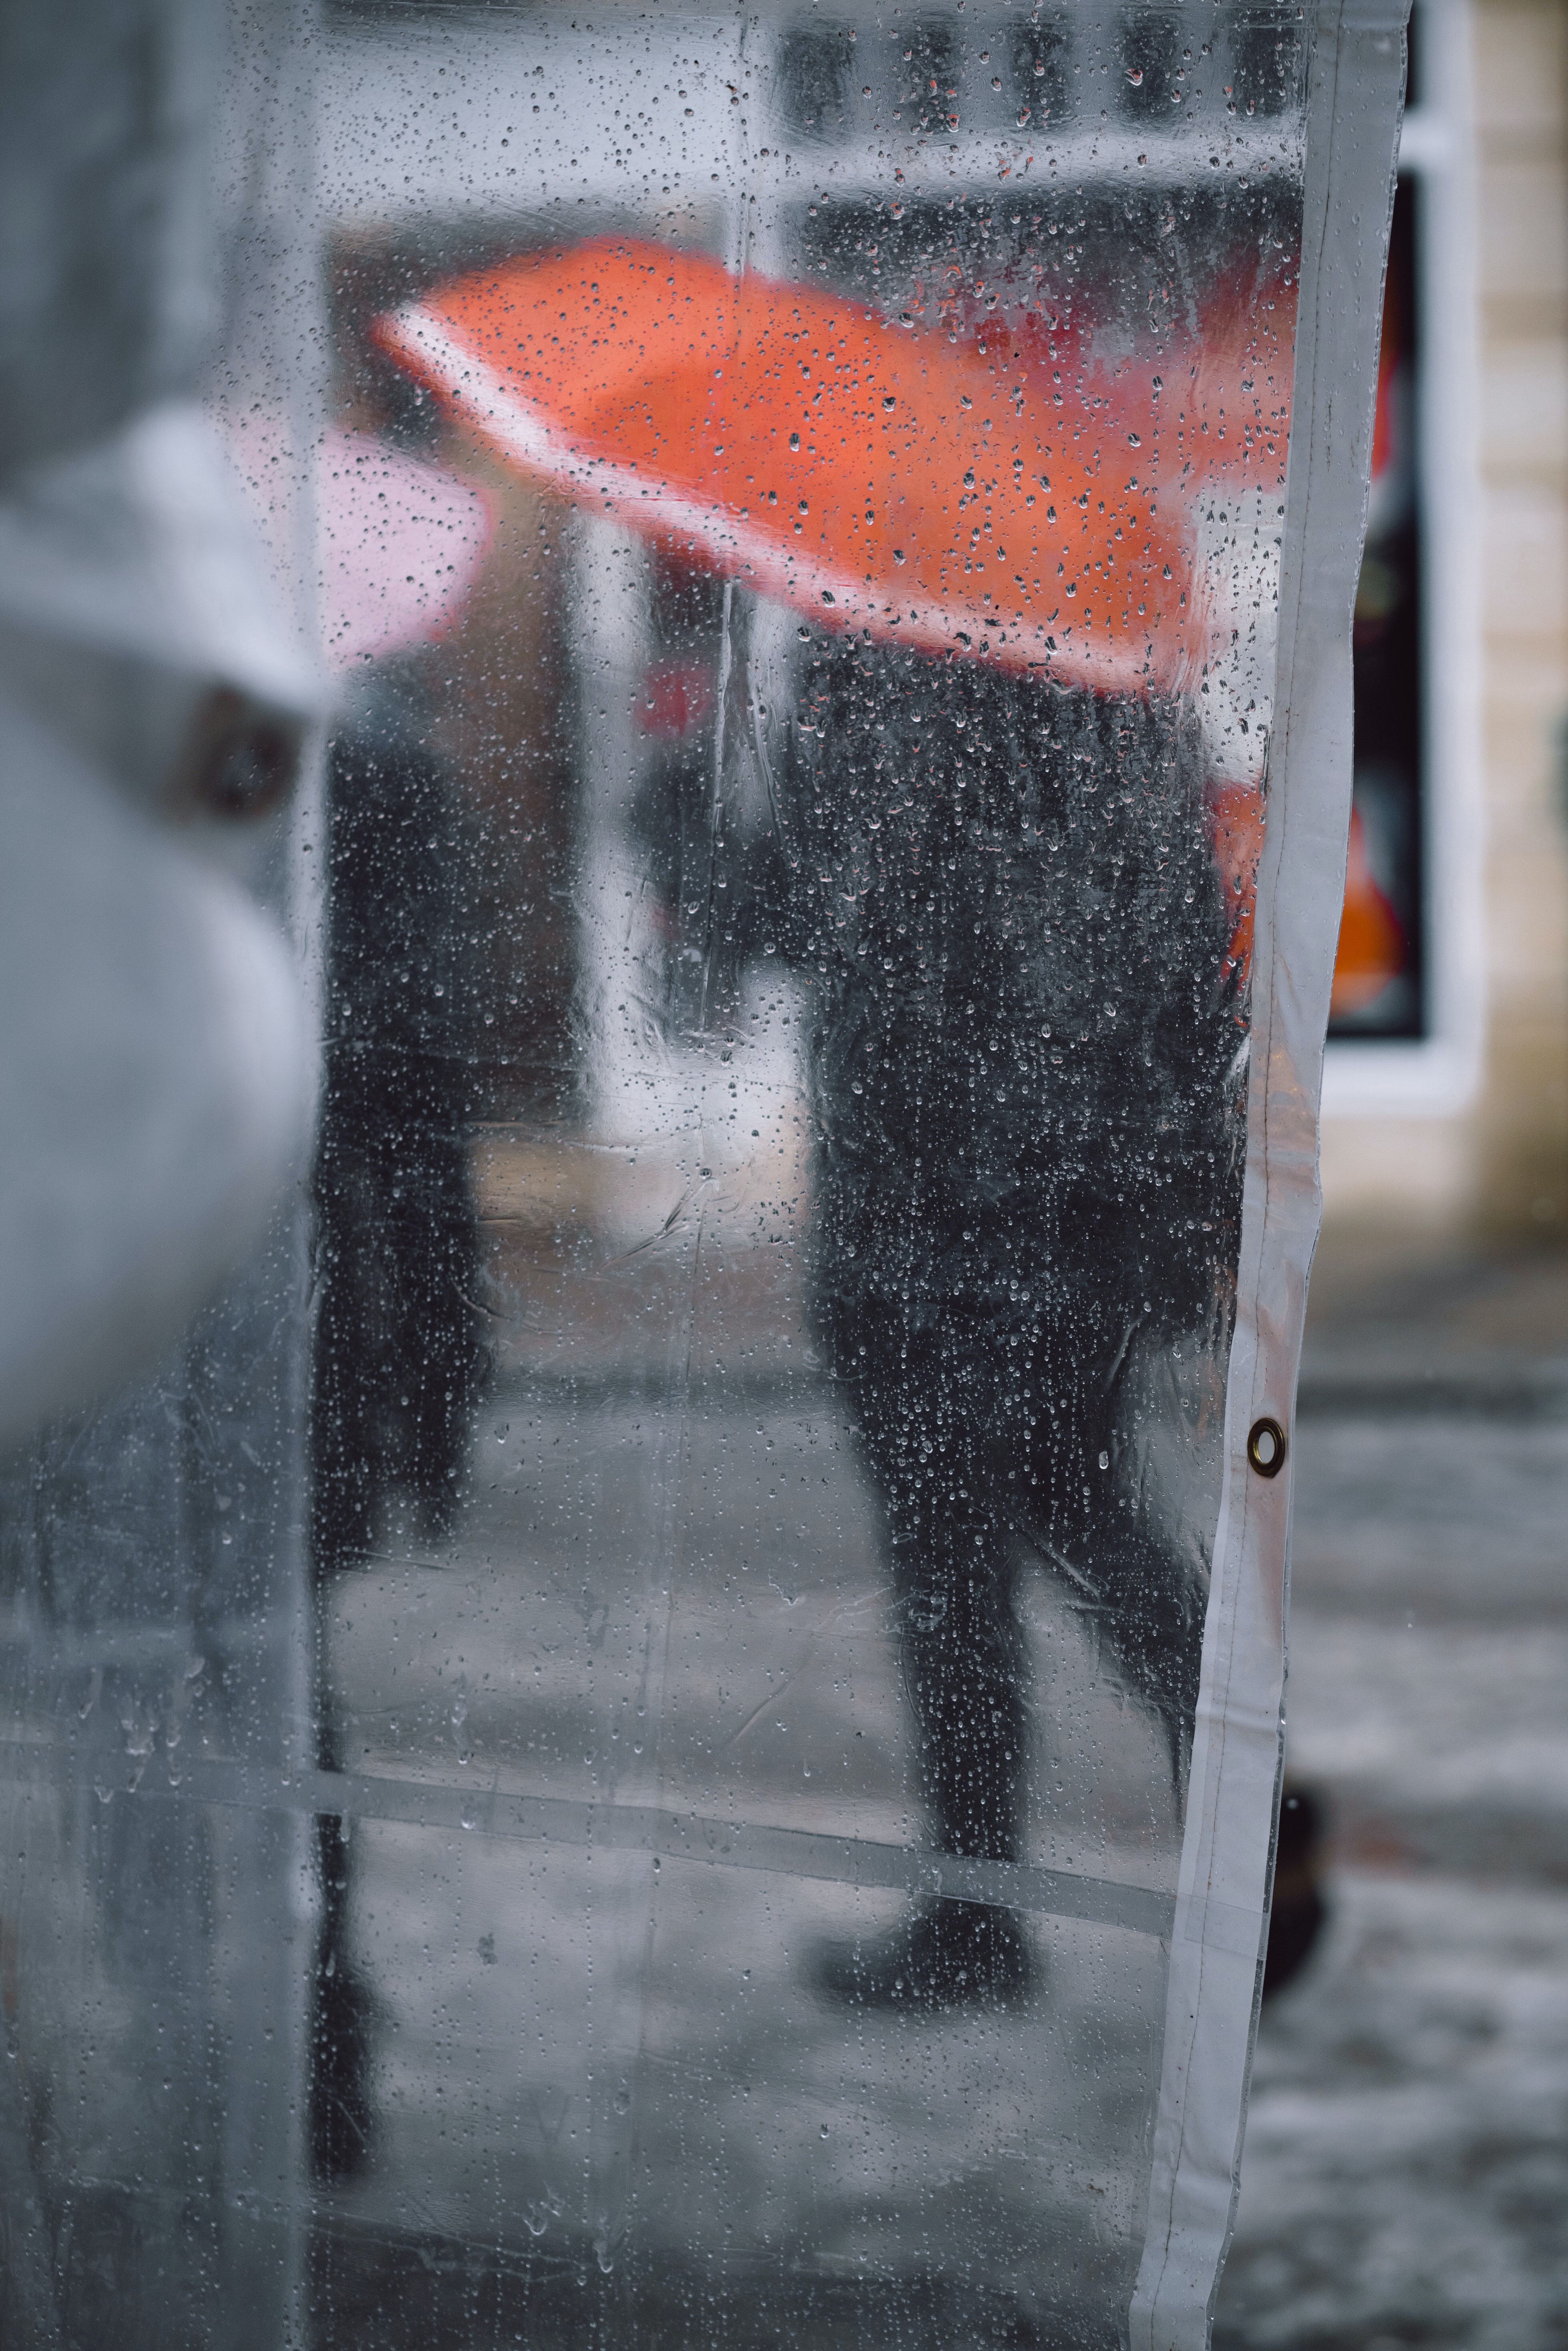 clear plastic coat with water drops showing people using umbrella